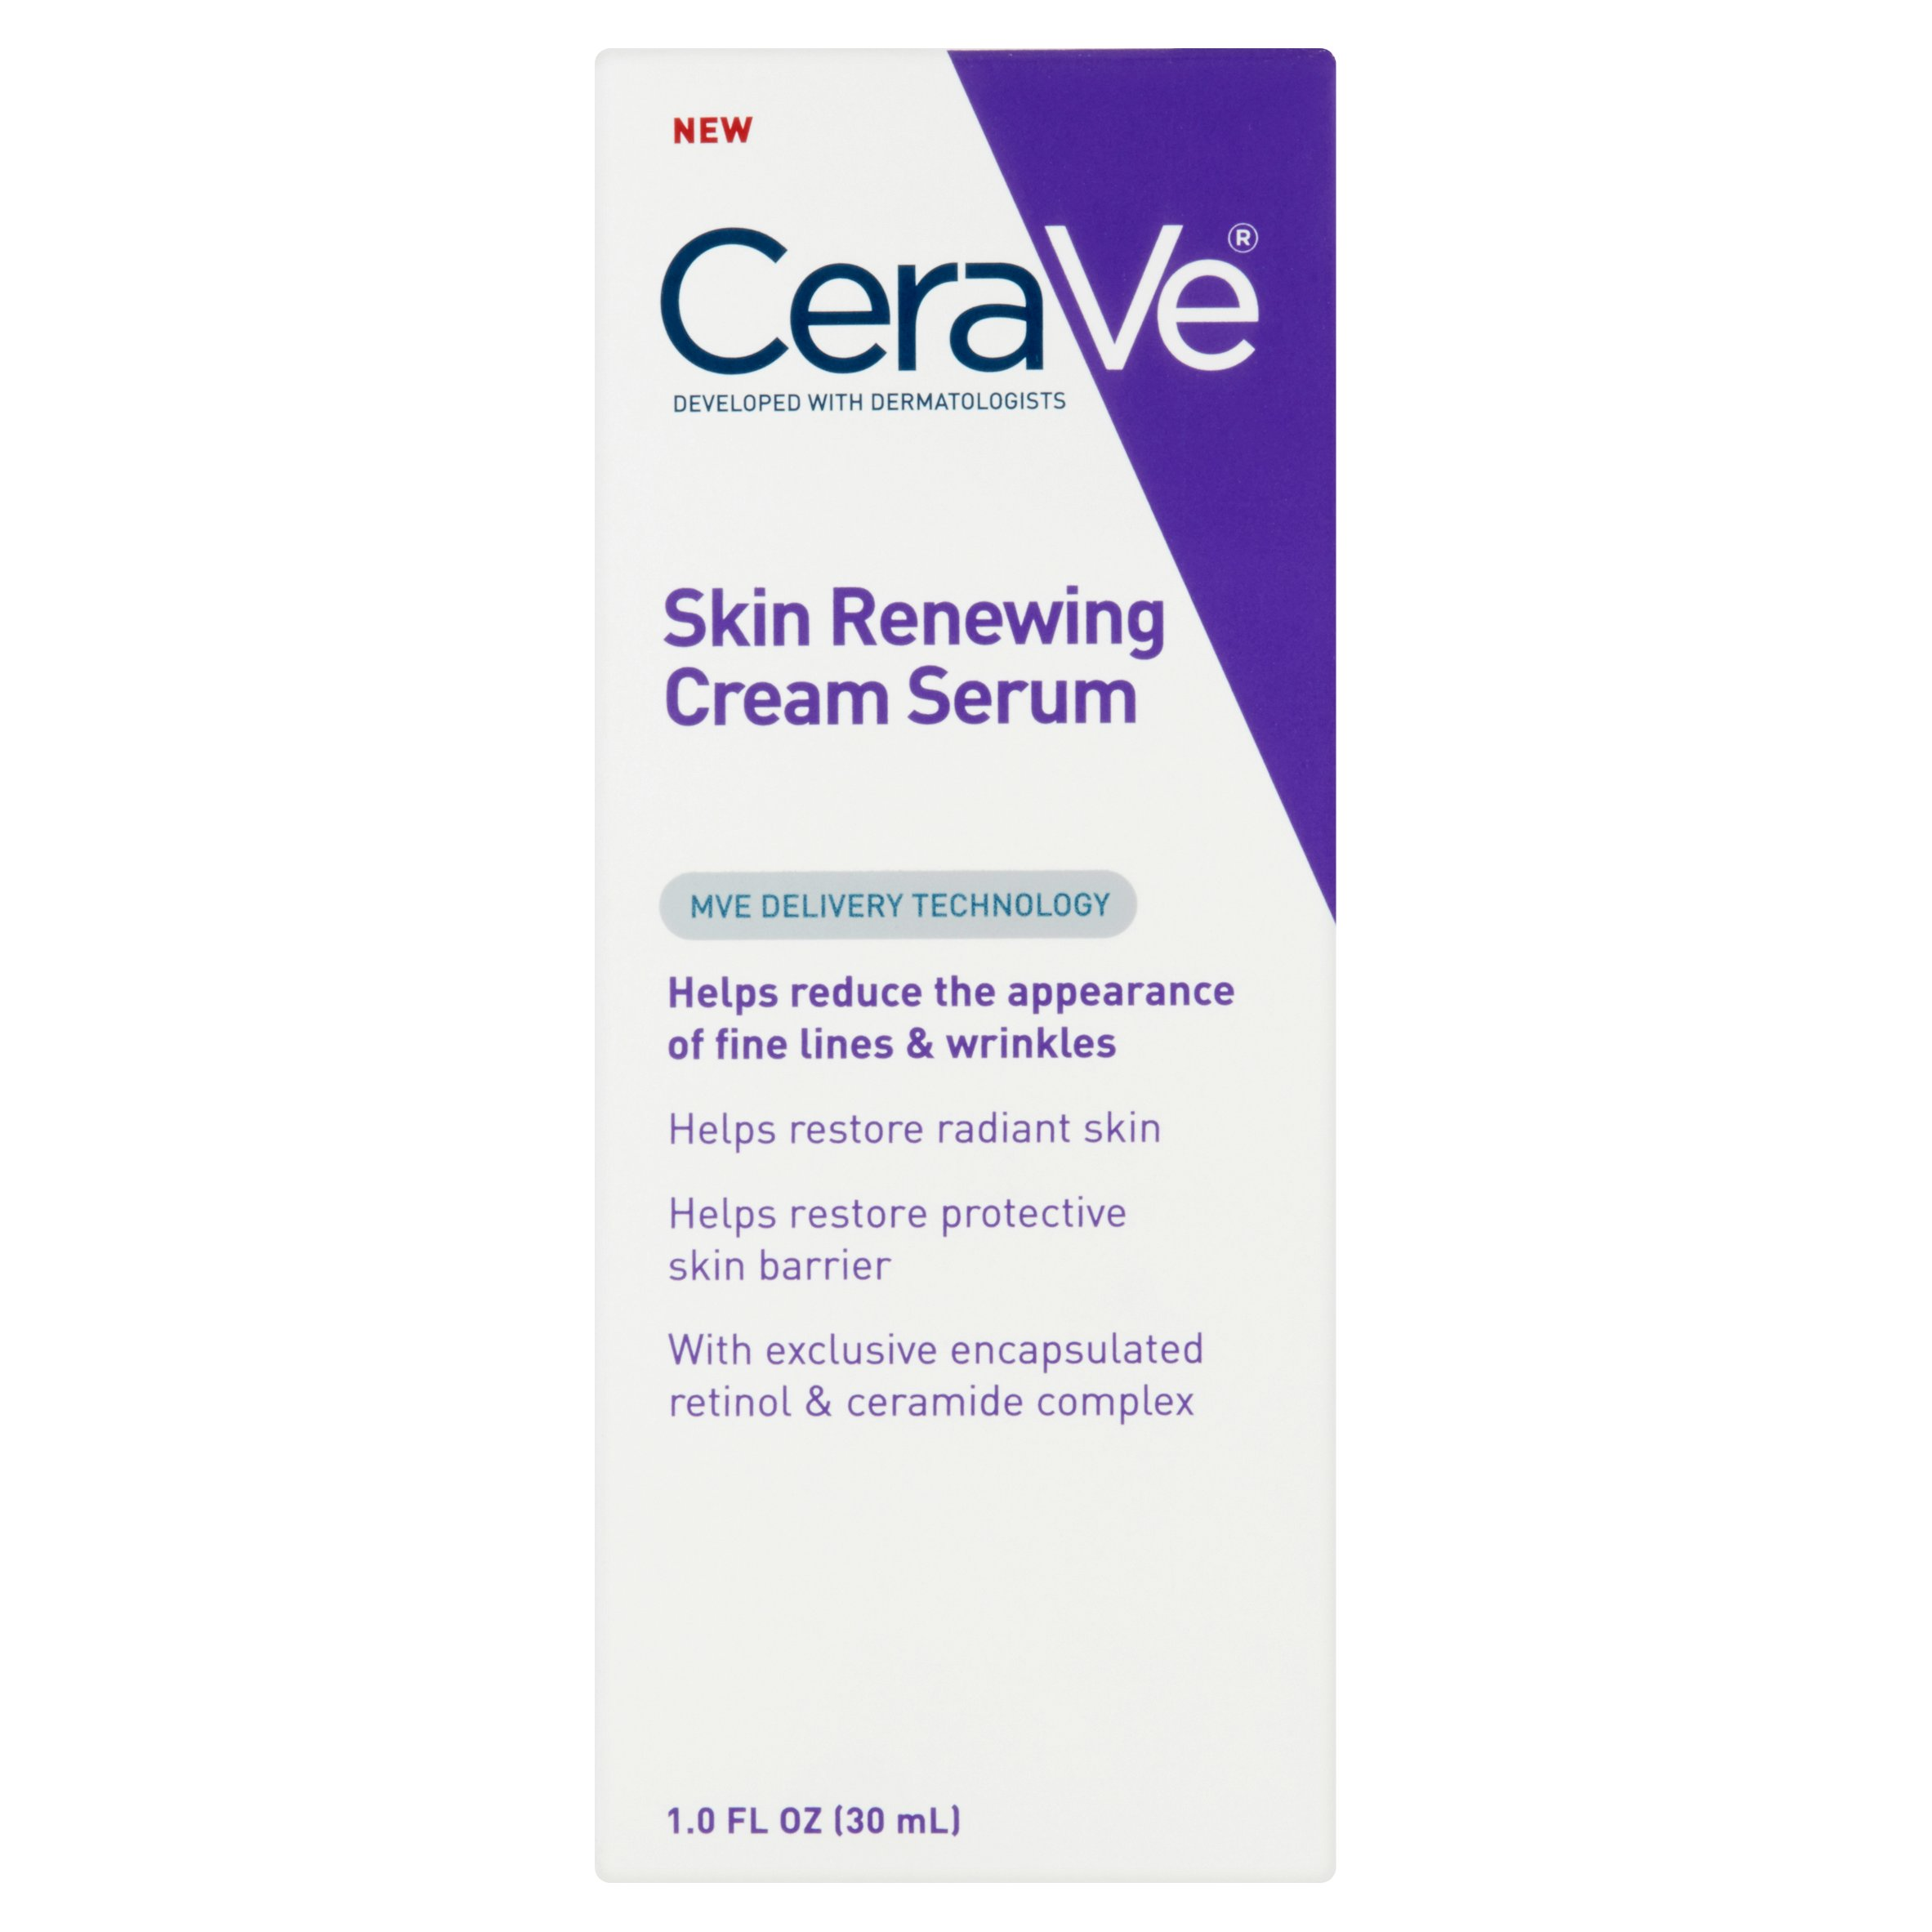 CeraVe Skin ReNewing Cream Serum, 1 fl oz by Valeant Consumer Products